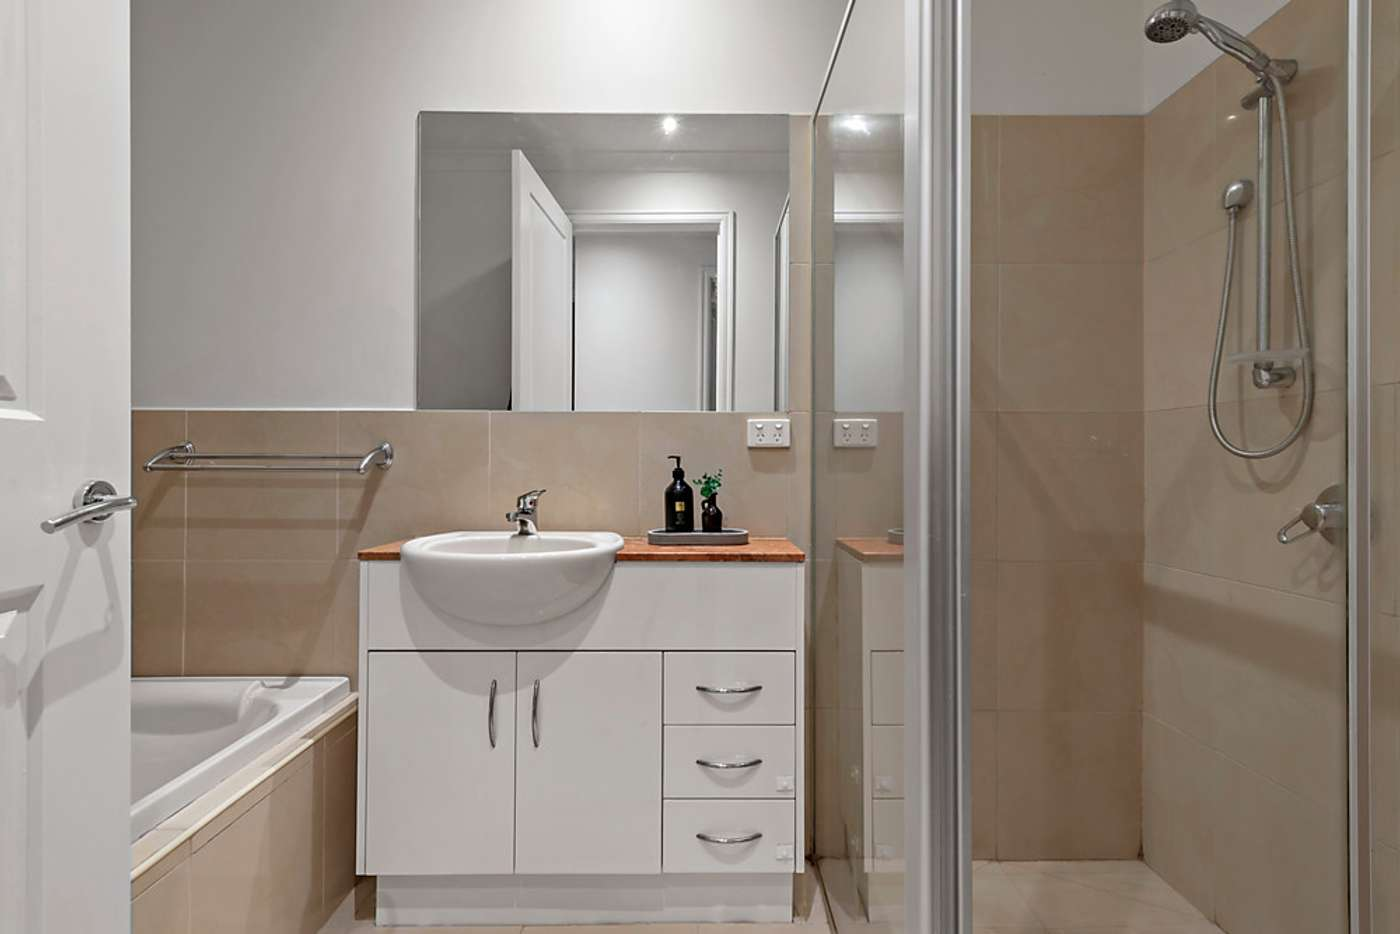 Fifth view of Homely townhouse listing, 2/28 Clairmont Avenue, Bentleigh VIC 3204